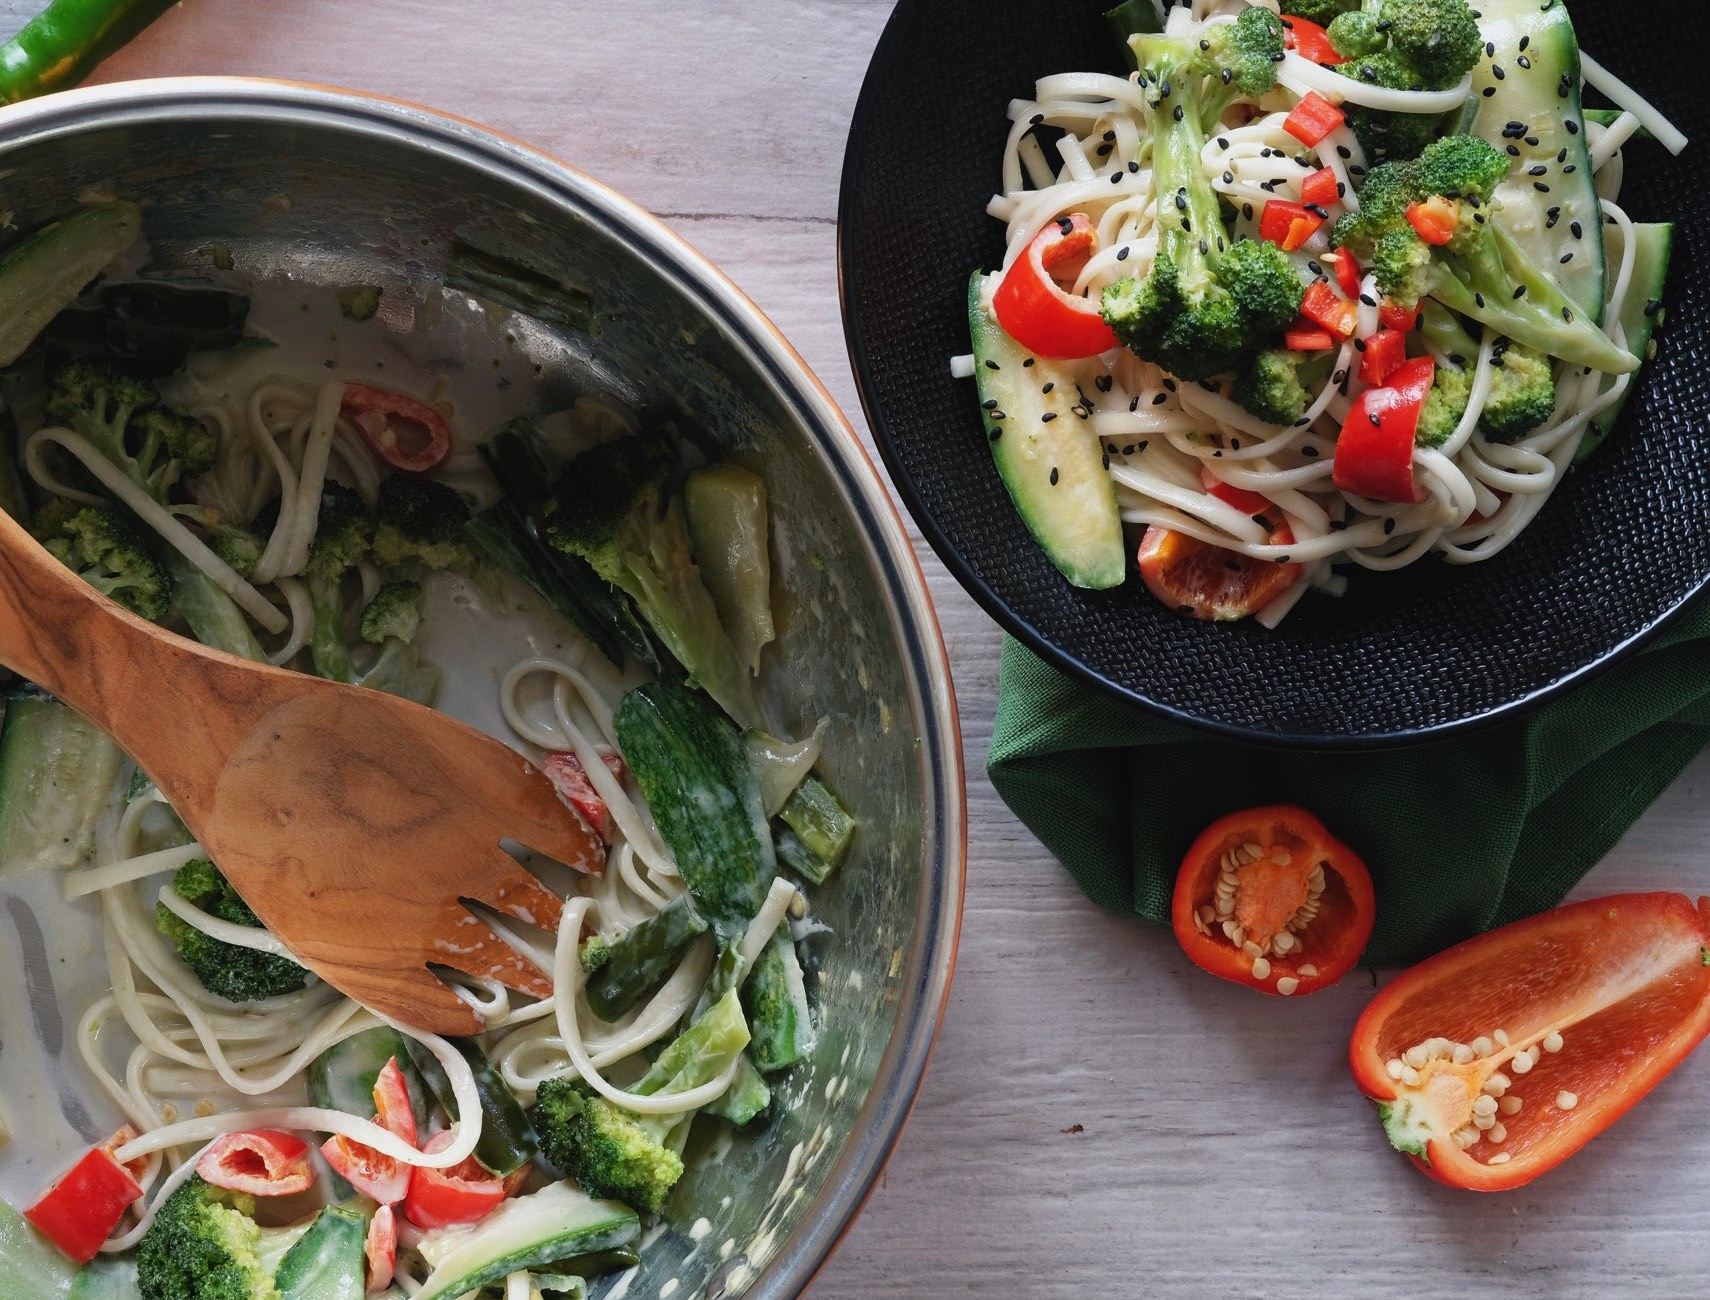 Vegetables noodles